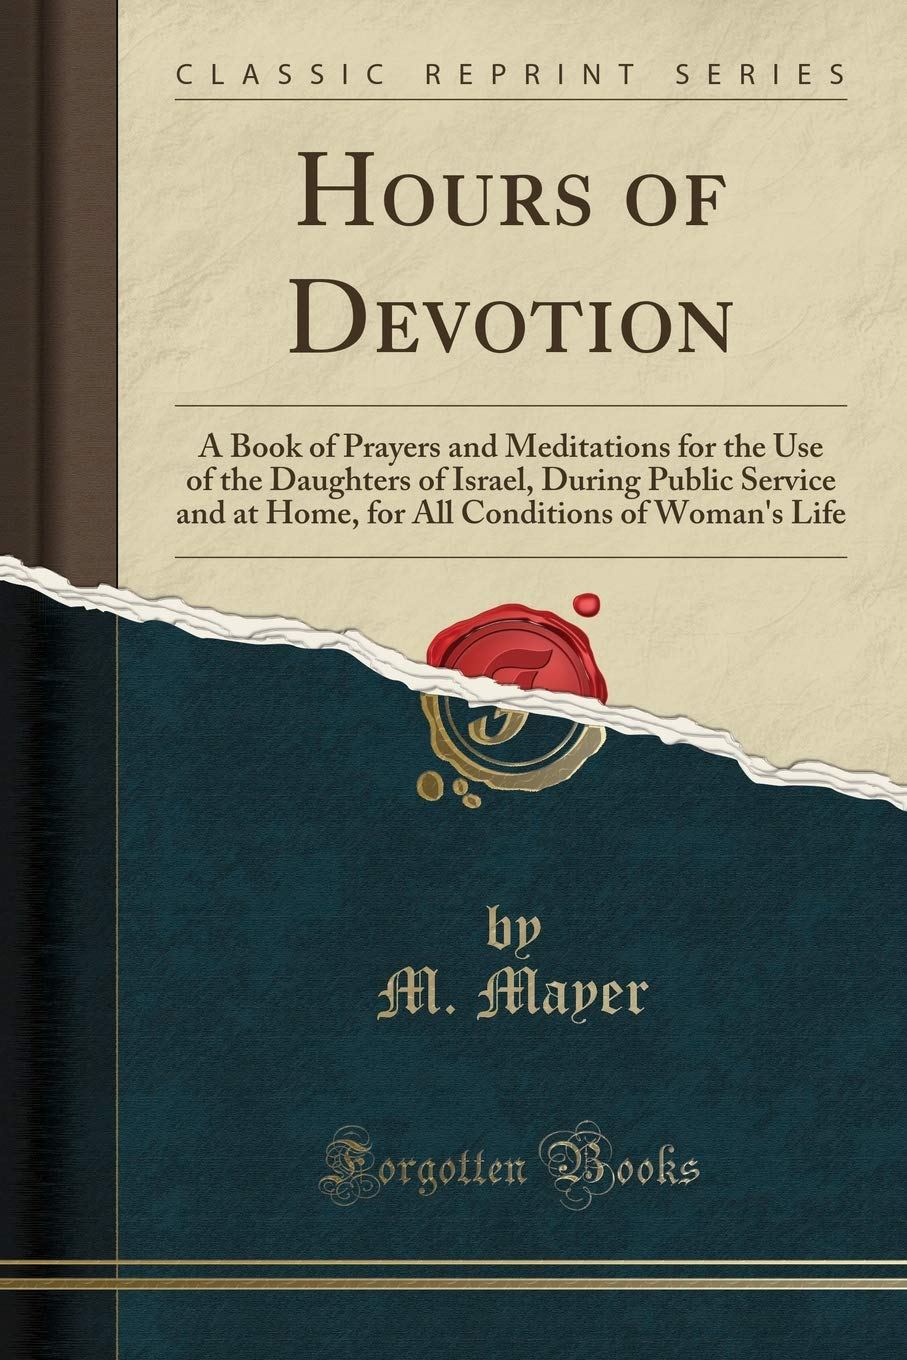 Hours of Devotion: A Book of Prayers and Meditations for the Use of the Daughters of Israel, During Public Service and at Home, for All Conditions of ... Life the German the German (Classic Reprint) pdf